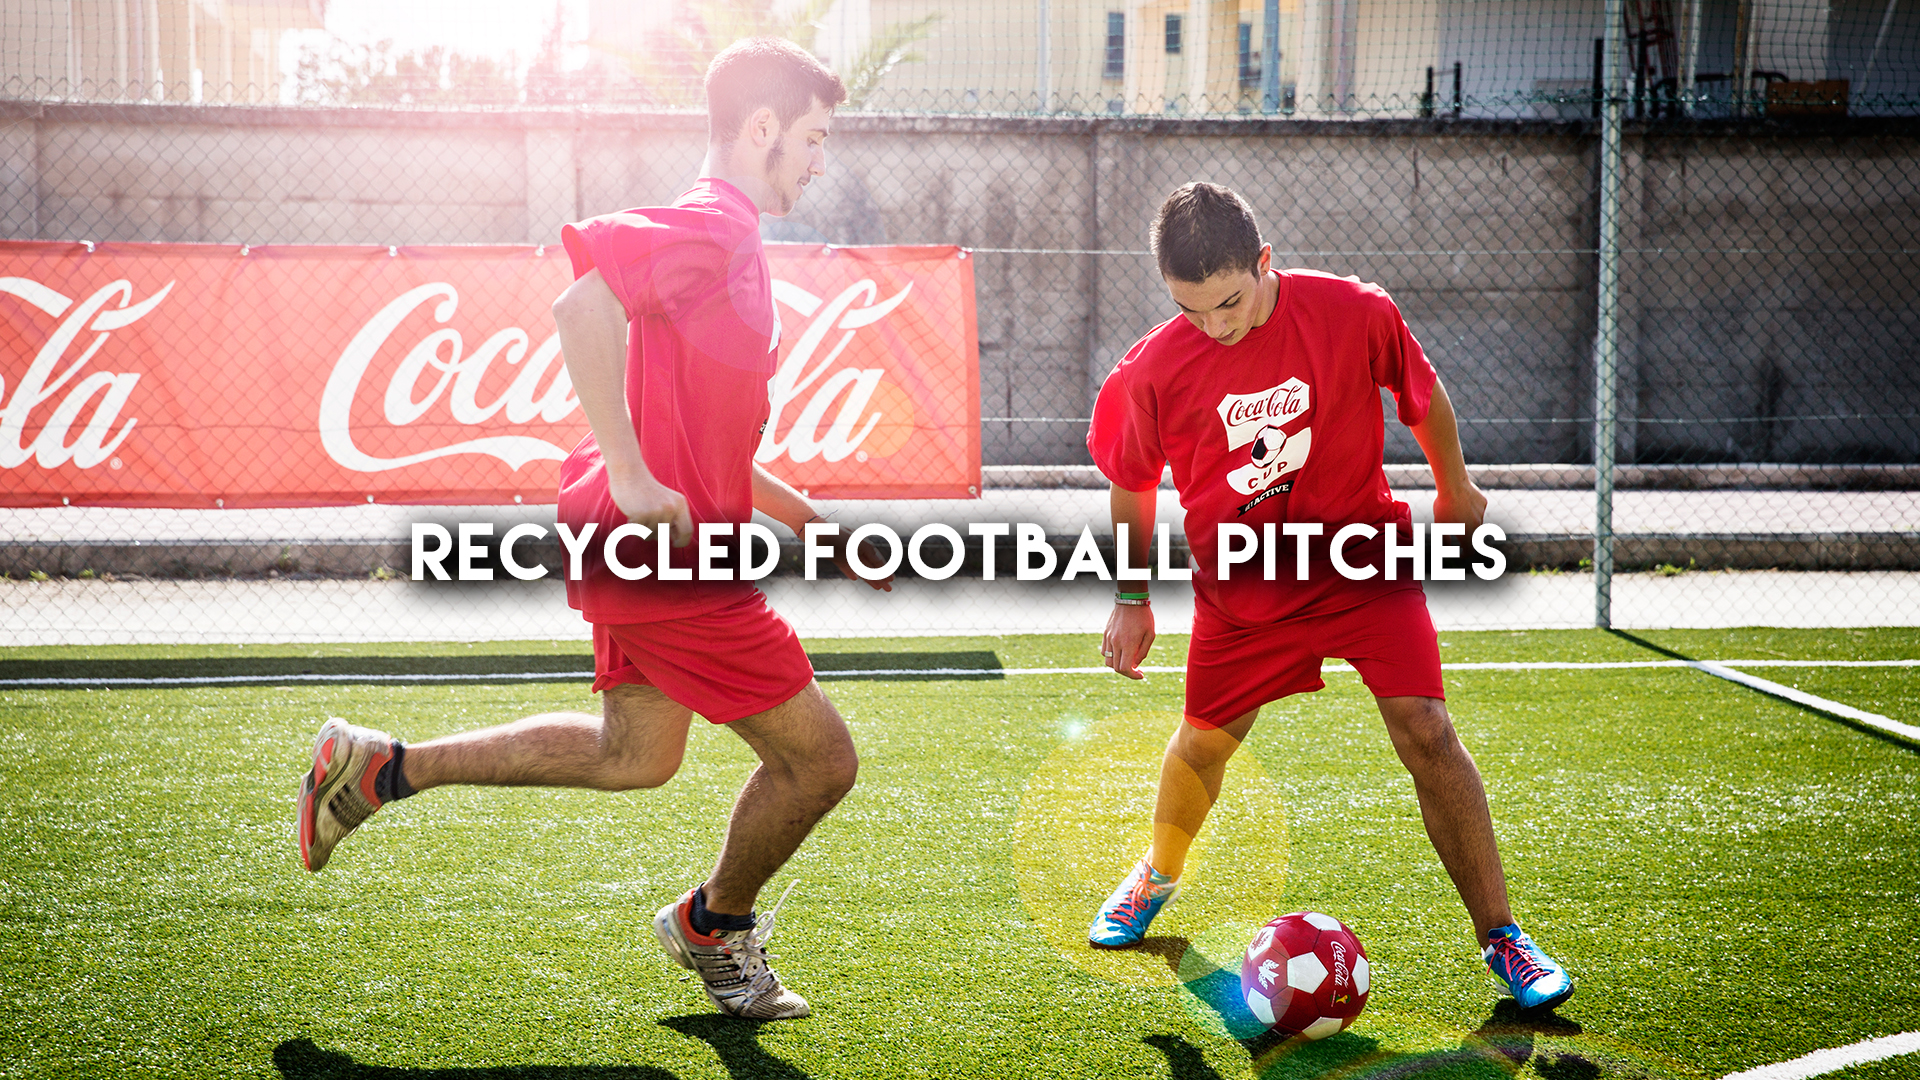 Recycled Football Pitches